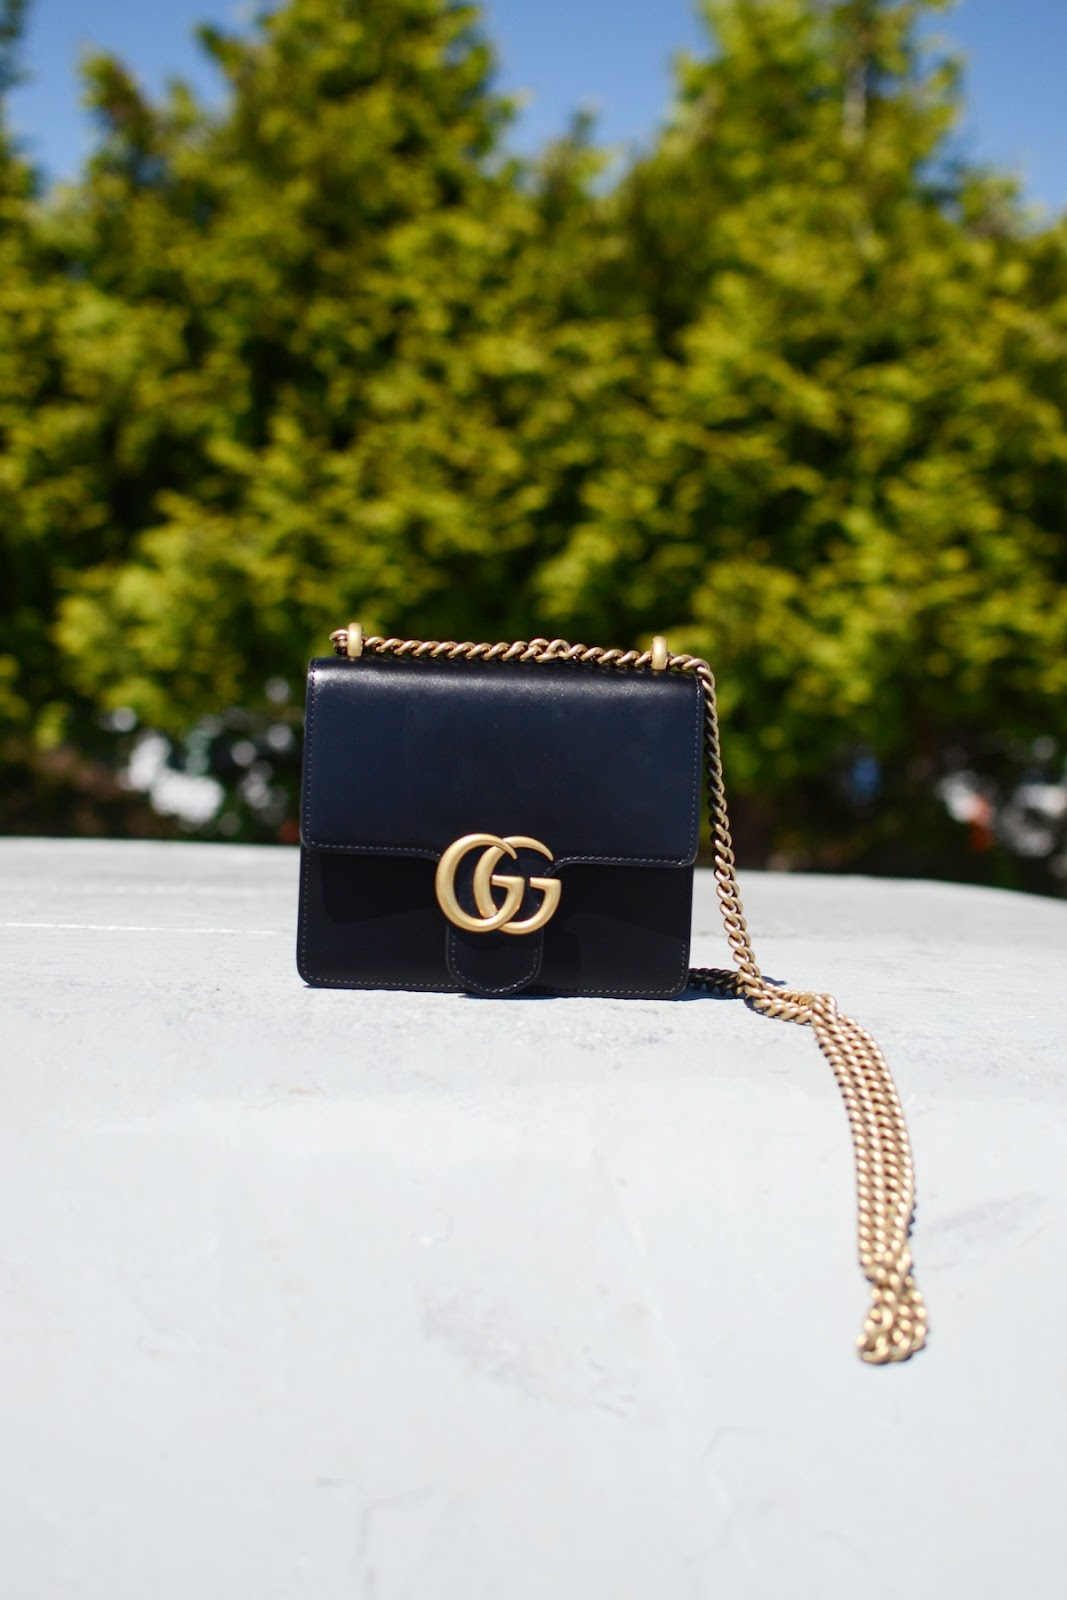 Gucci Marmont Shoulder bag blogger